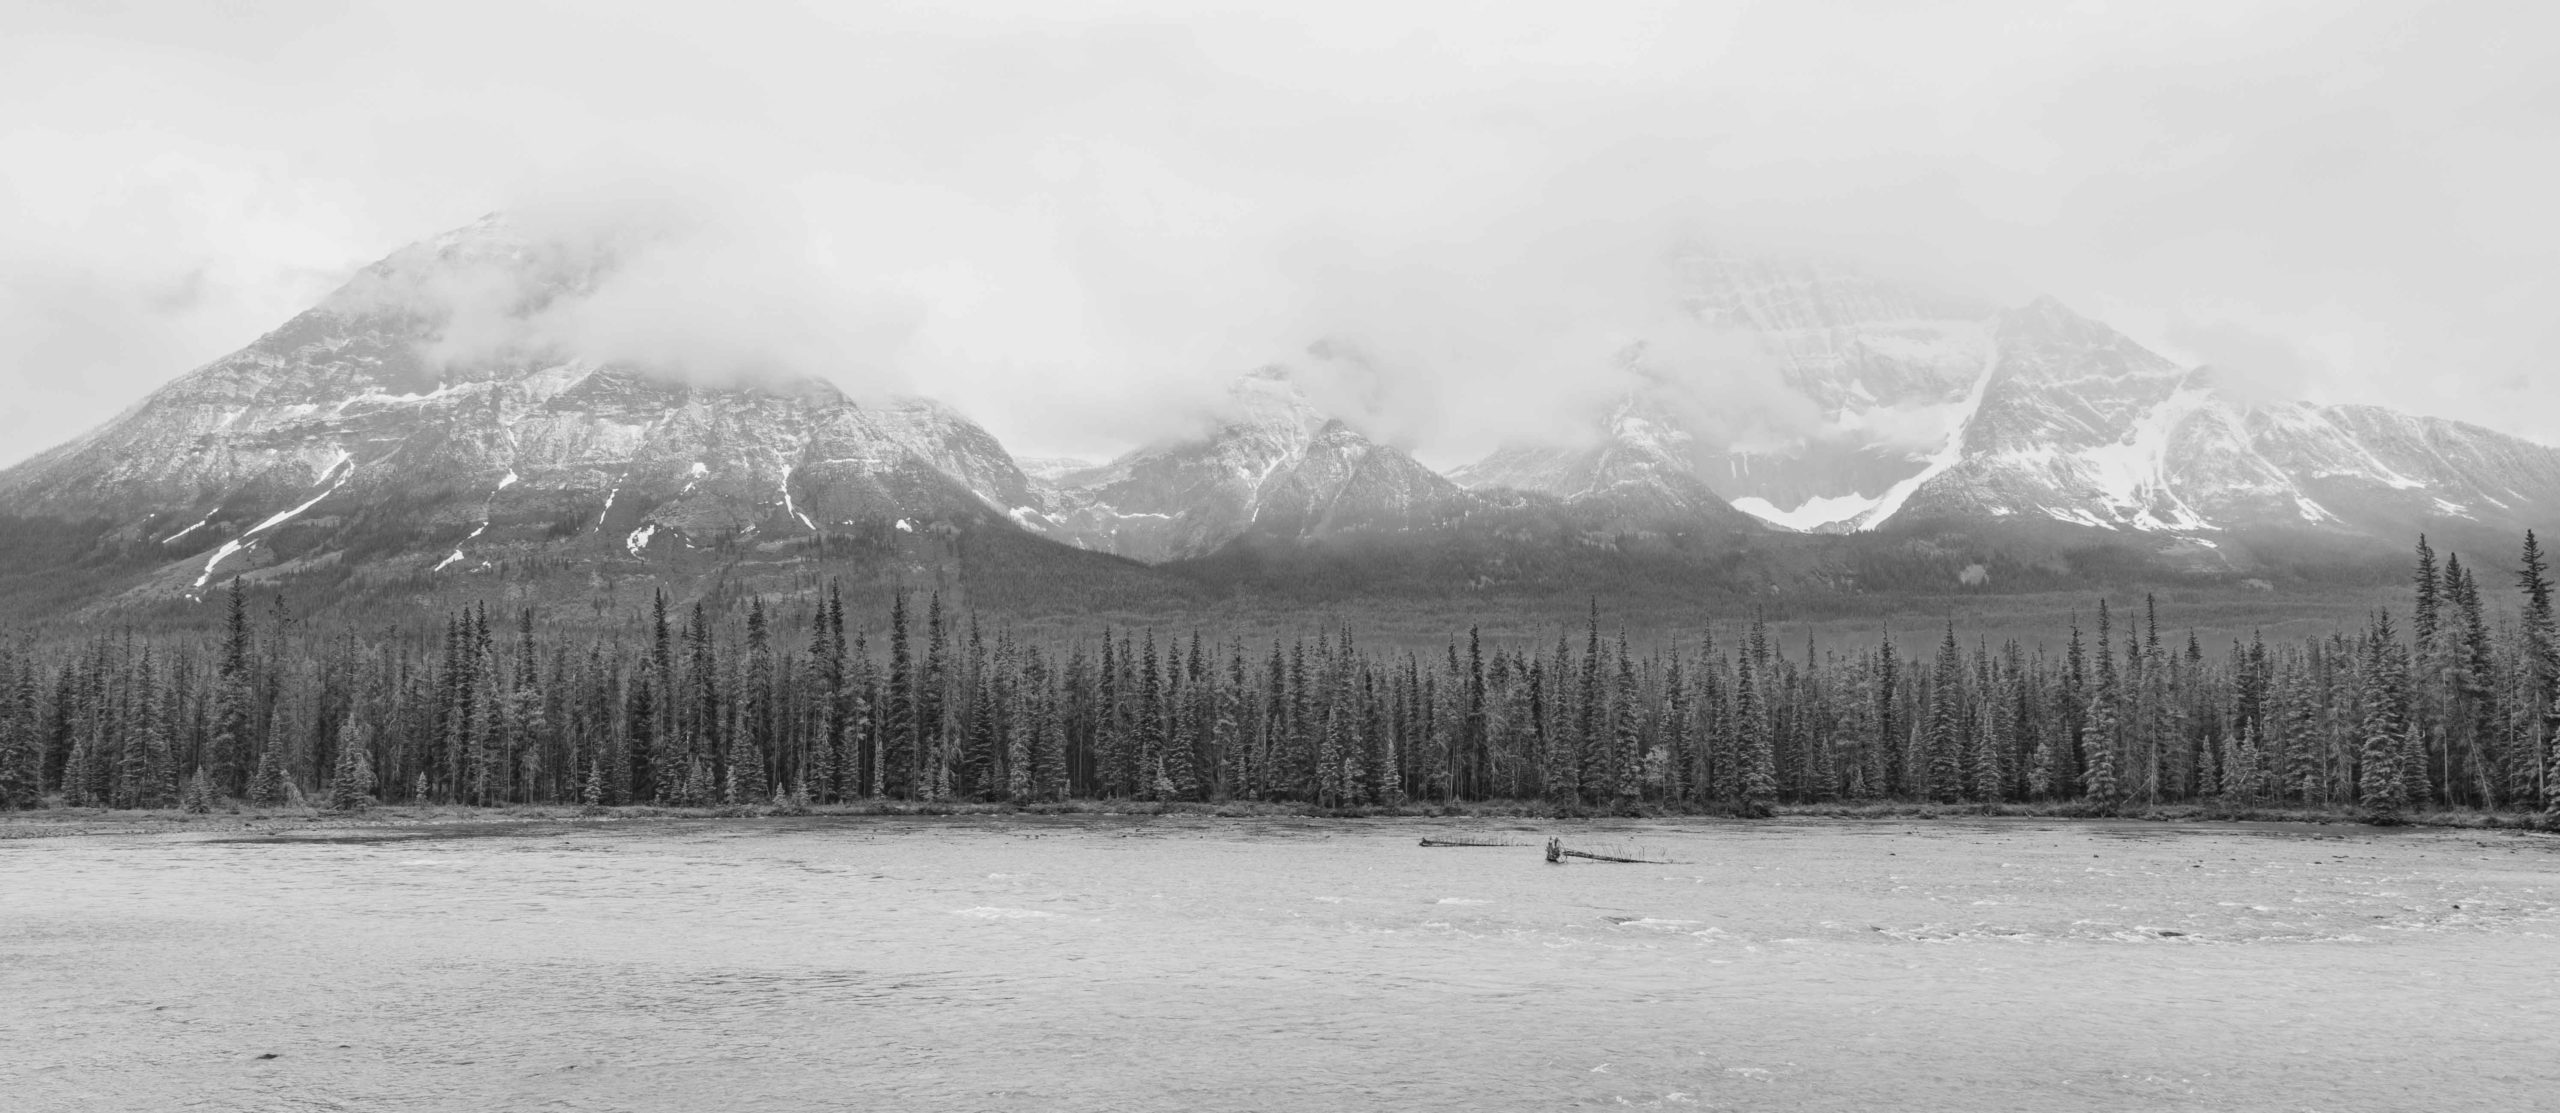 Mountain scenery while driving through the Canadian Rockies by Jack Hawkins